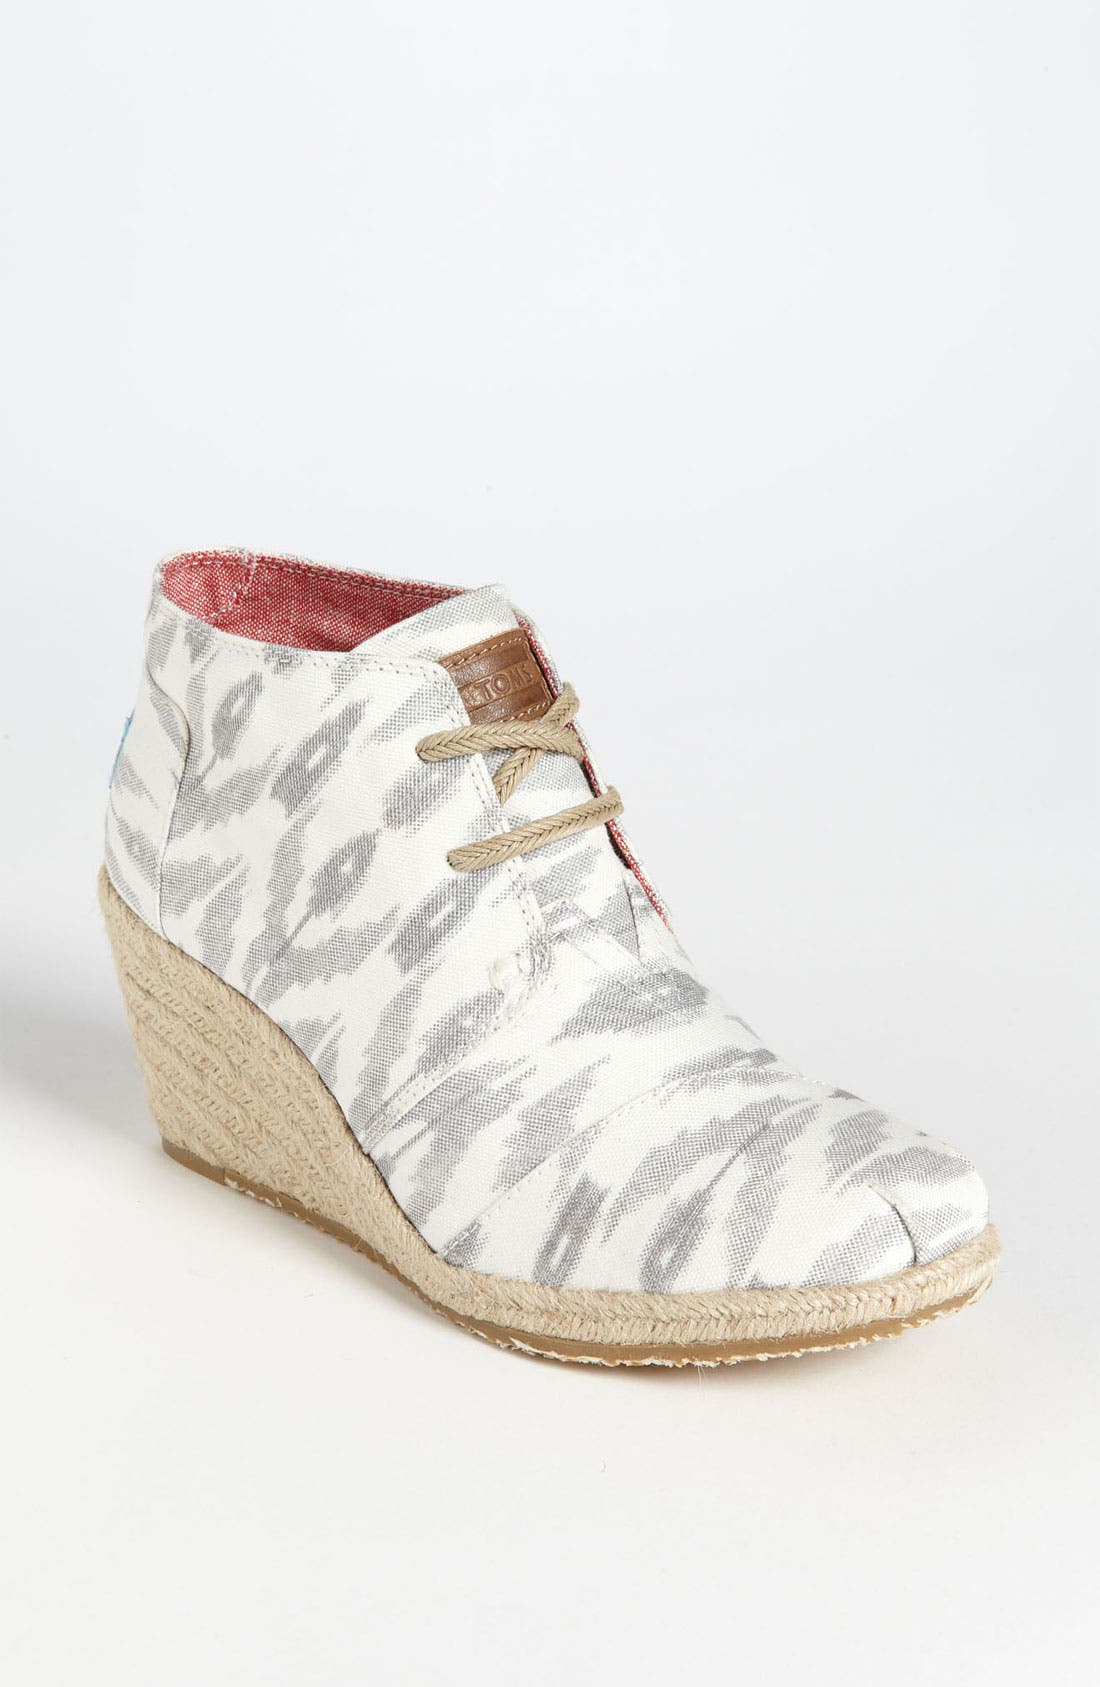 Alternate Image 1 Selected - TOMS 'Desert - Ikat' Wedge Bootie